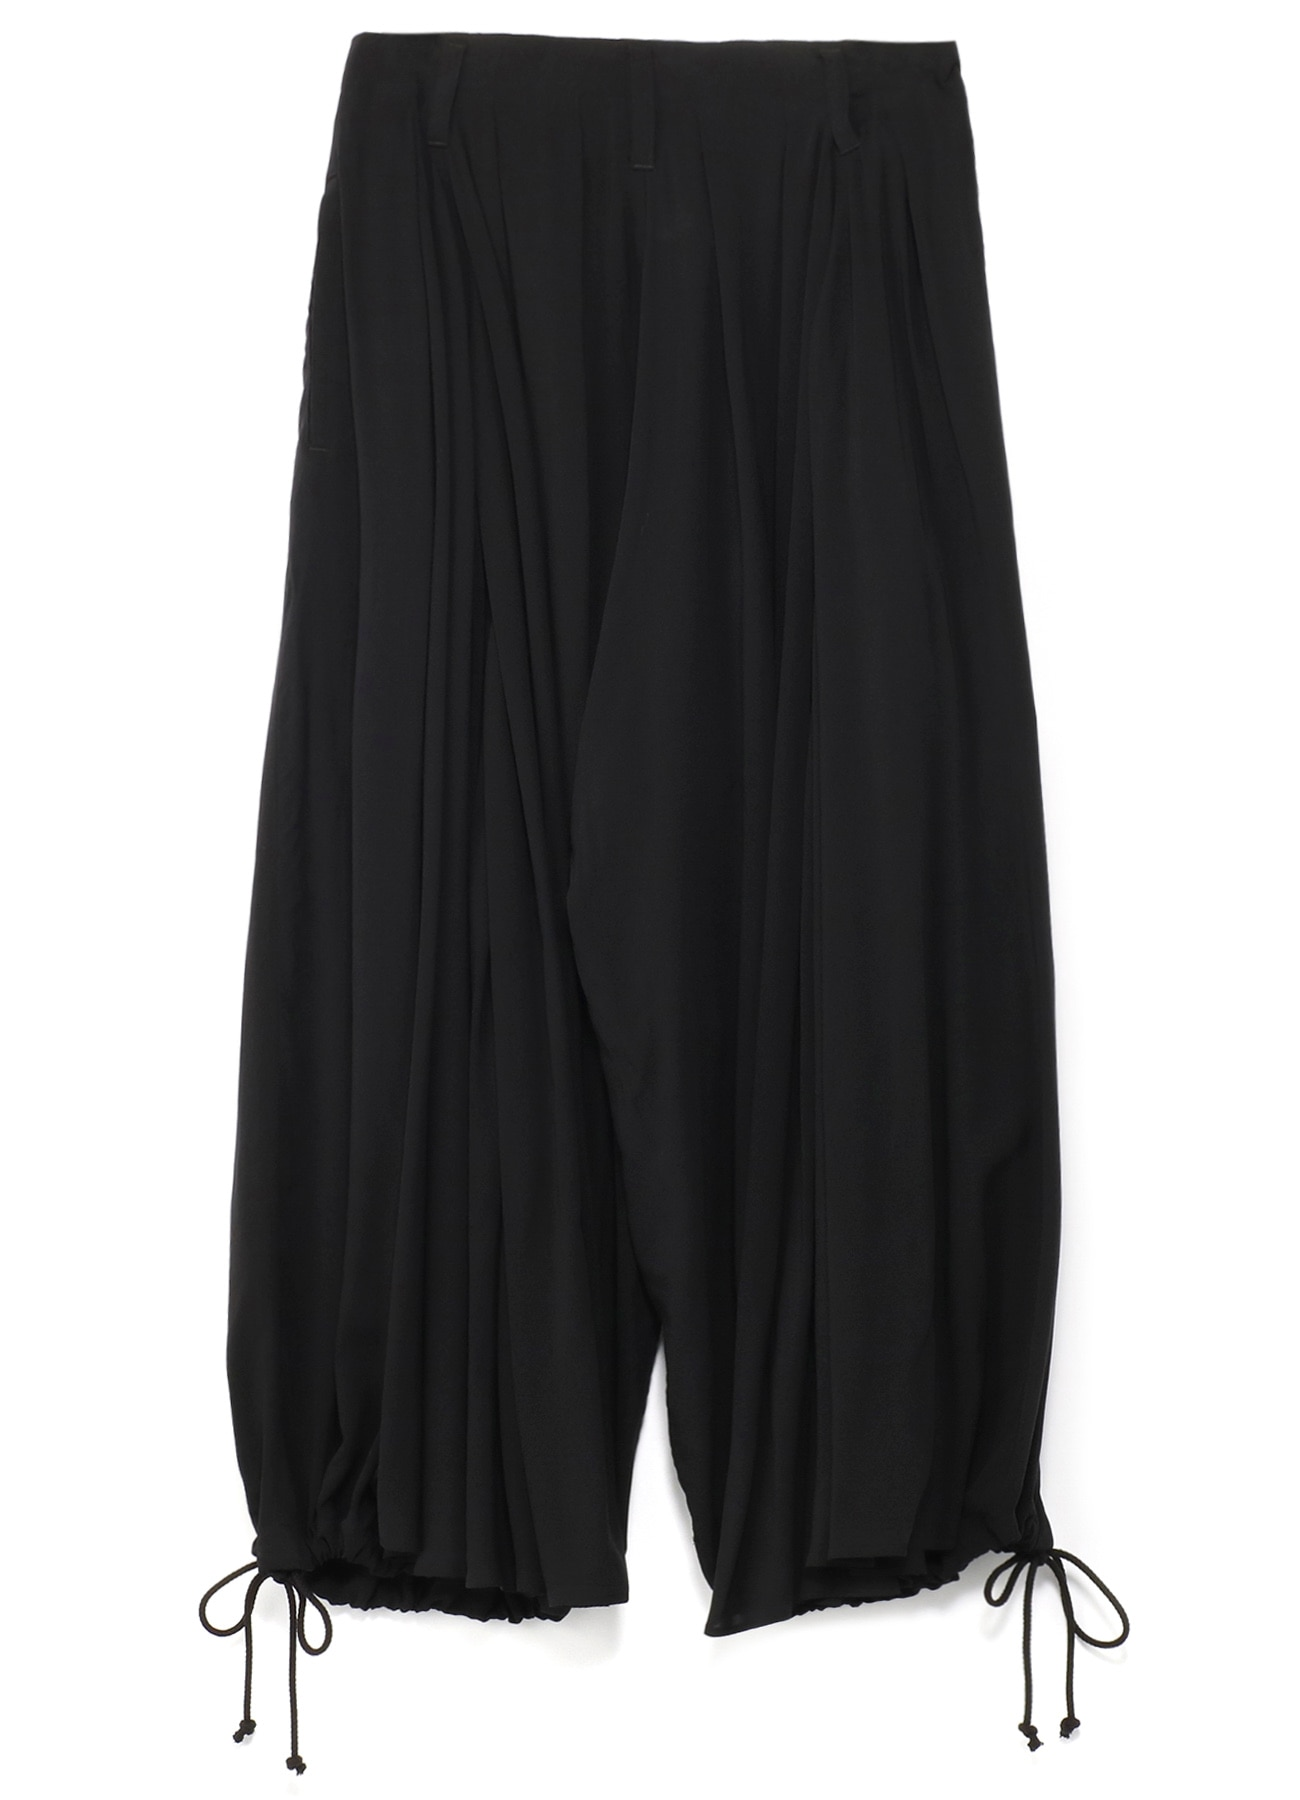 Rayon Spun Lawn Balloon Crow Pants​ ​